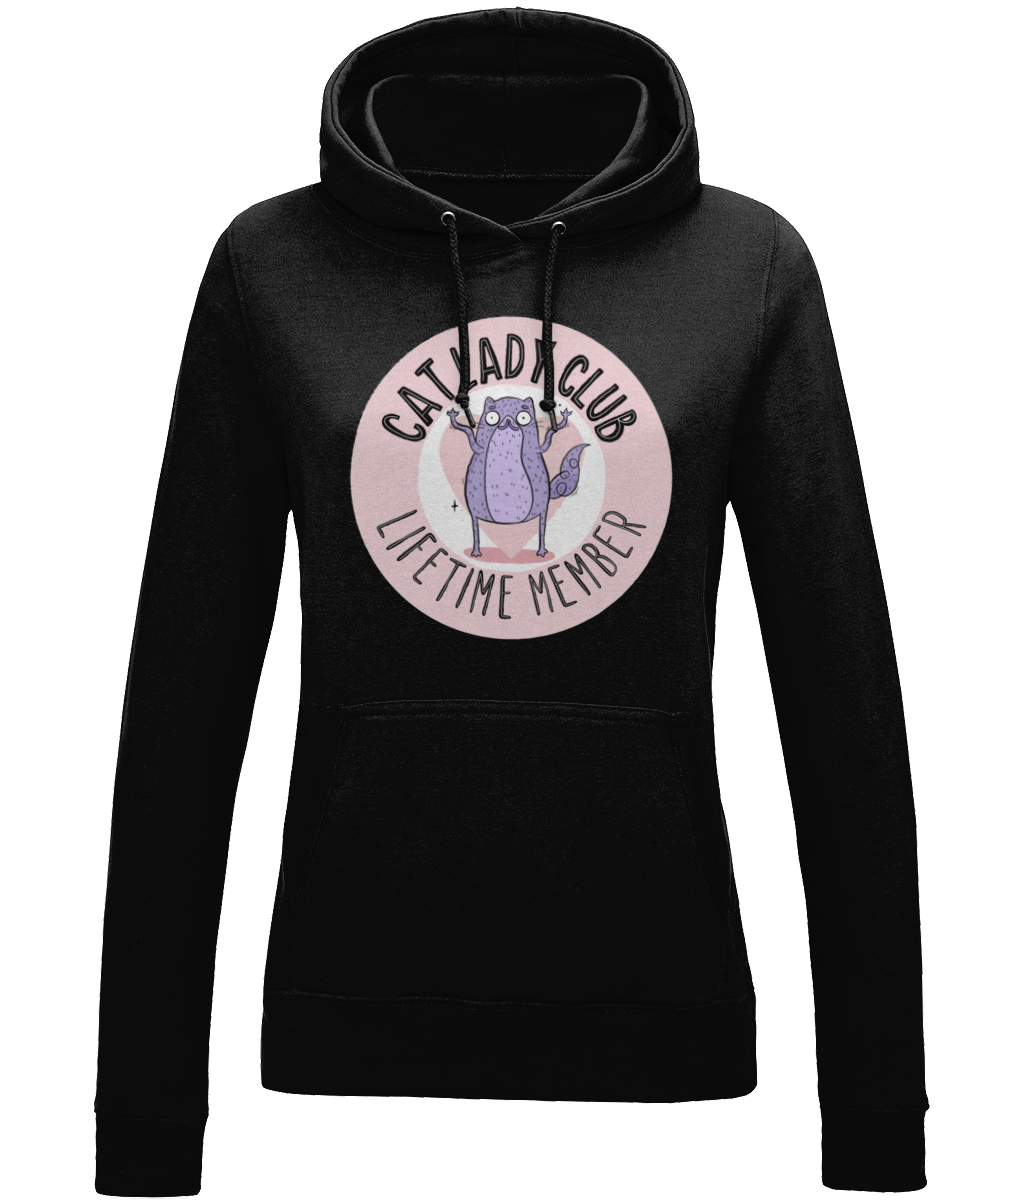 Cat Lady Club Hoodie - House Of Wonderland, HOW